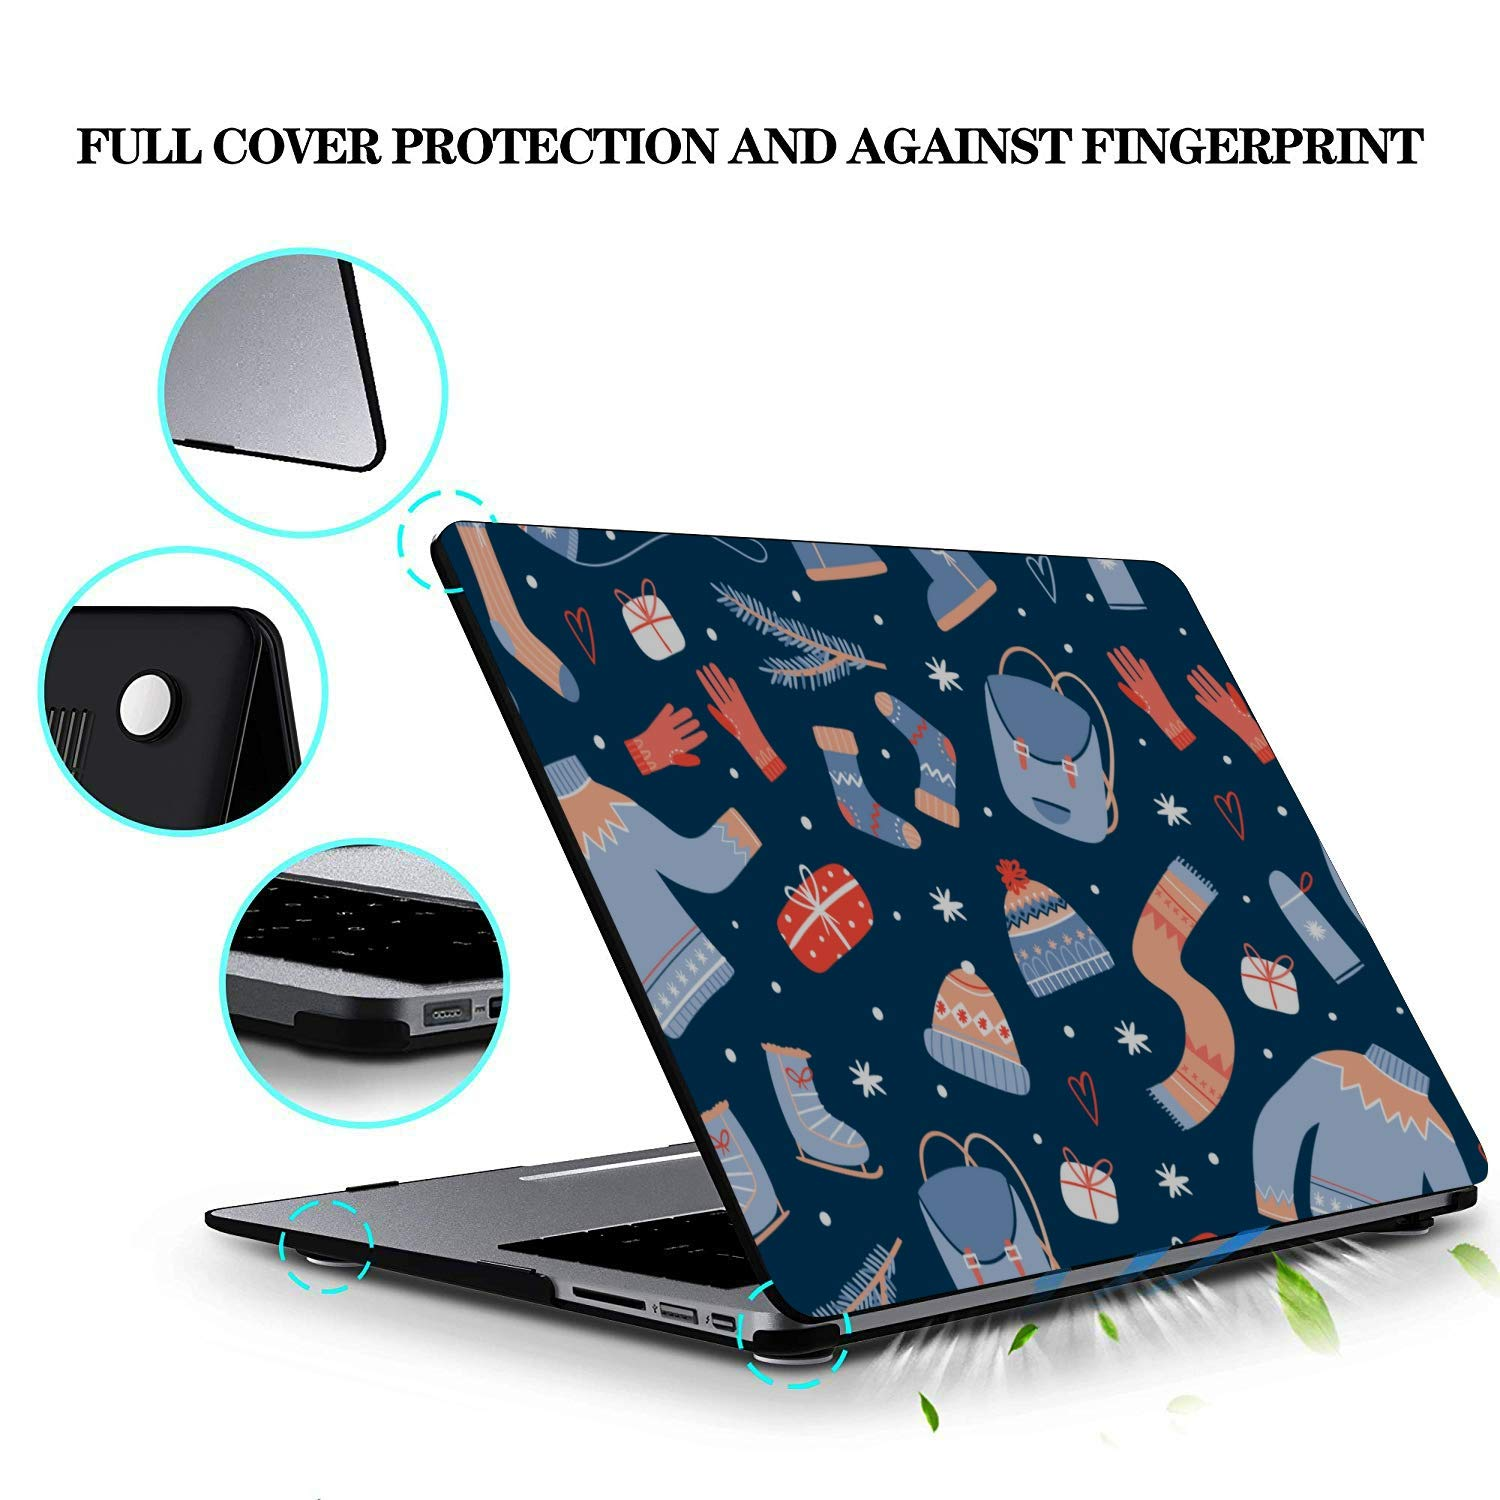 MacBook Pro Protector Winter Warm Cartoon Cute Snow Boots Plastic Hard Shell Compatible Mac Air 11 Pro 13 15 Laptop 13 Inch Case Protection for MacBook 2016-2019 Version